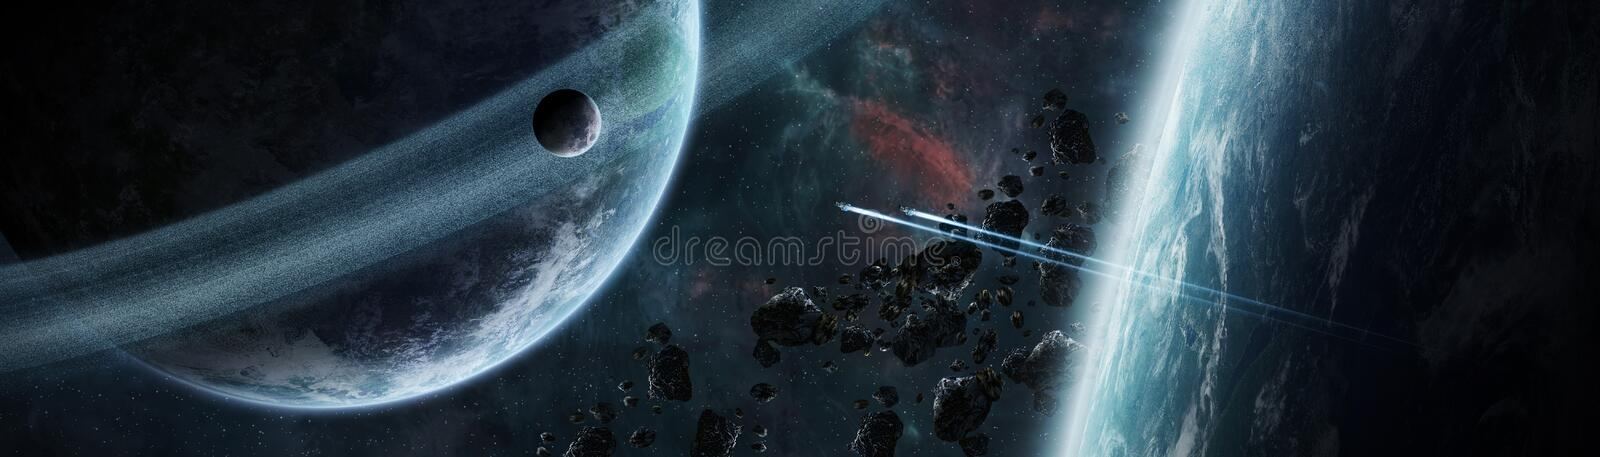 Panoramic view of planets in distant solar system 3D rendering e. Panoramic view of planets in distant solar system in space 3D rendering elements of this image royalty free illustration